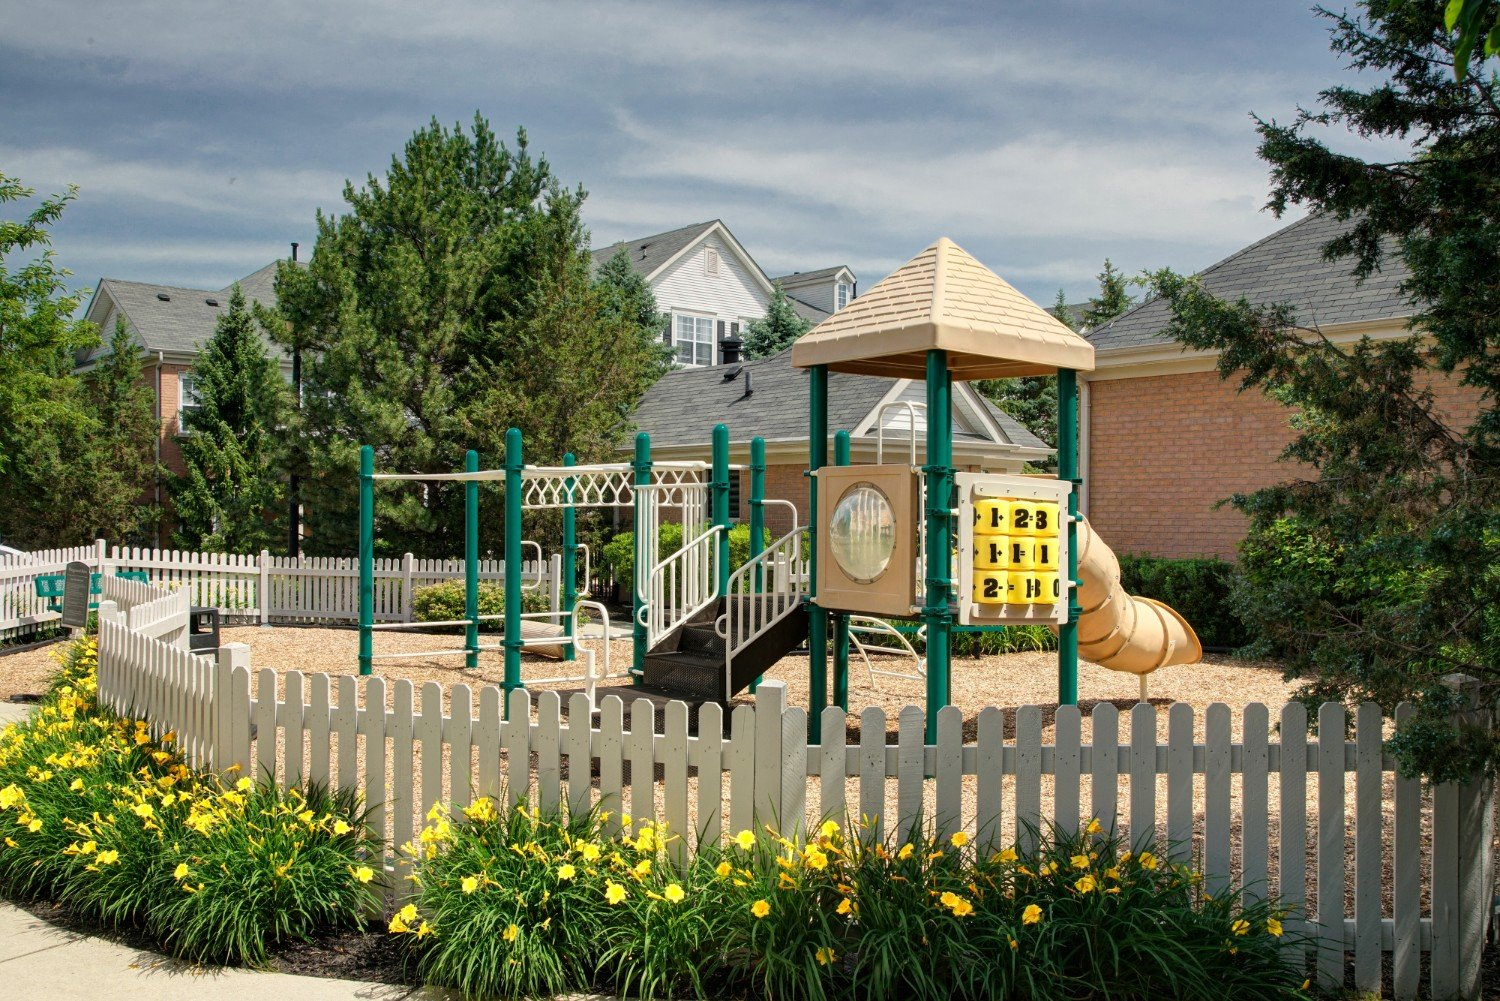 Apartment Rentals with Playground Area- River Run at Naperville Apartments